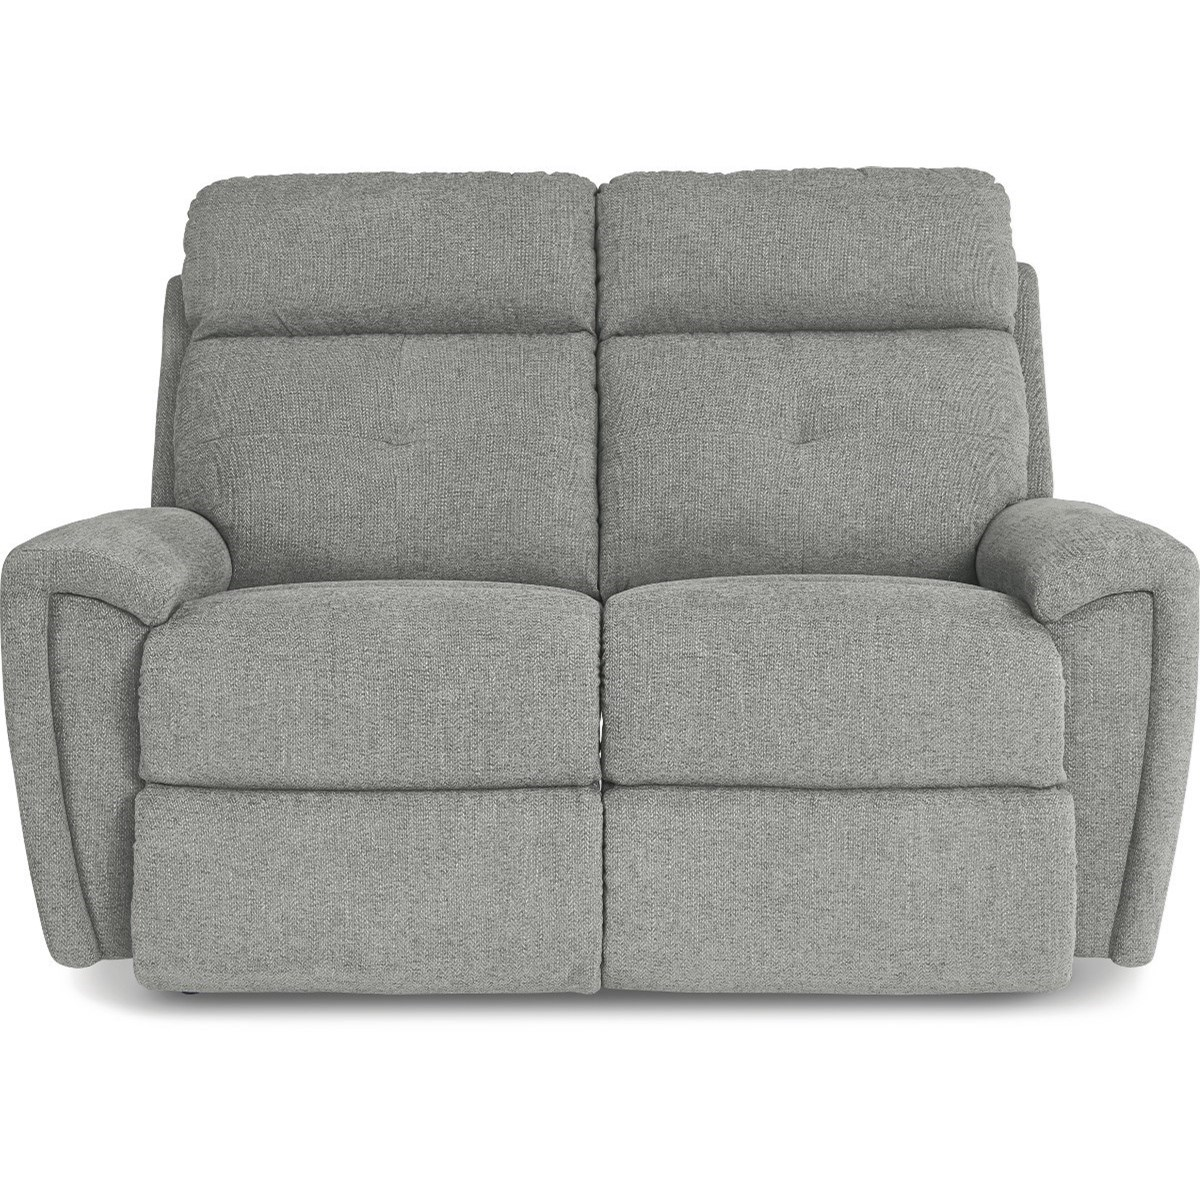 Douglas Reclining Loveseat by La-Z-Boy at SuperStore